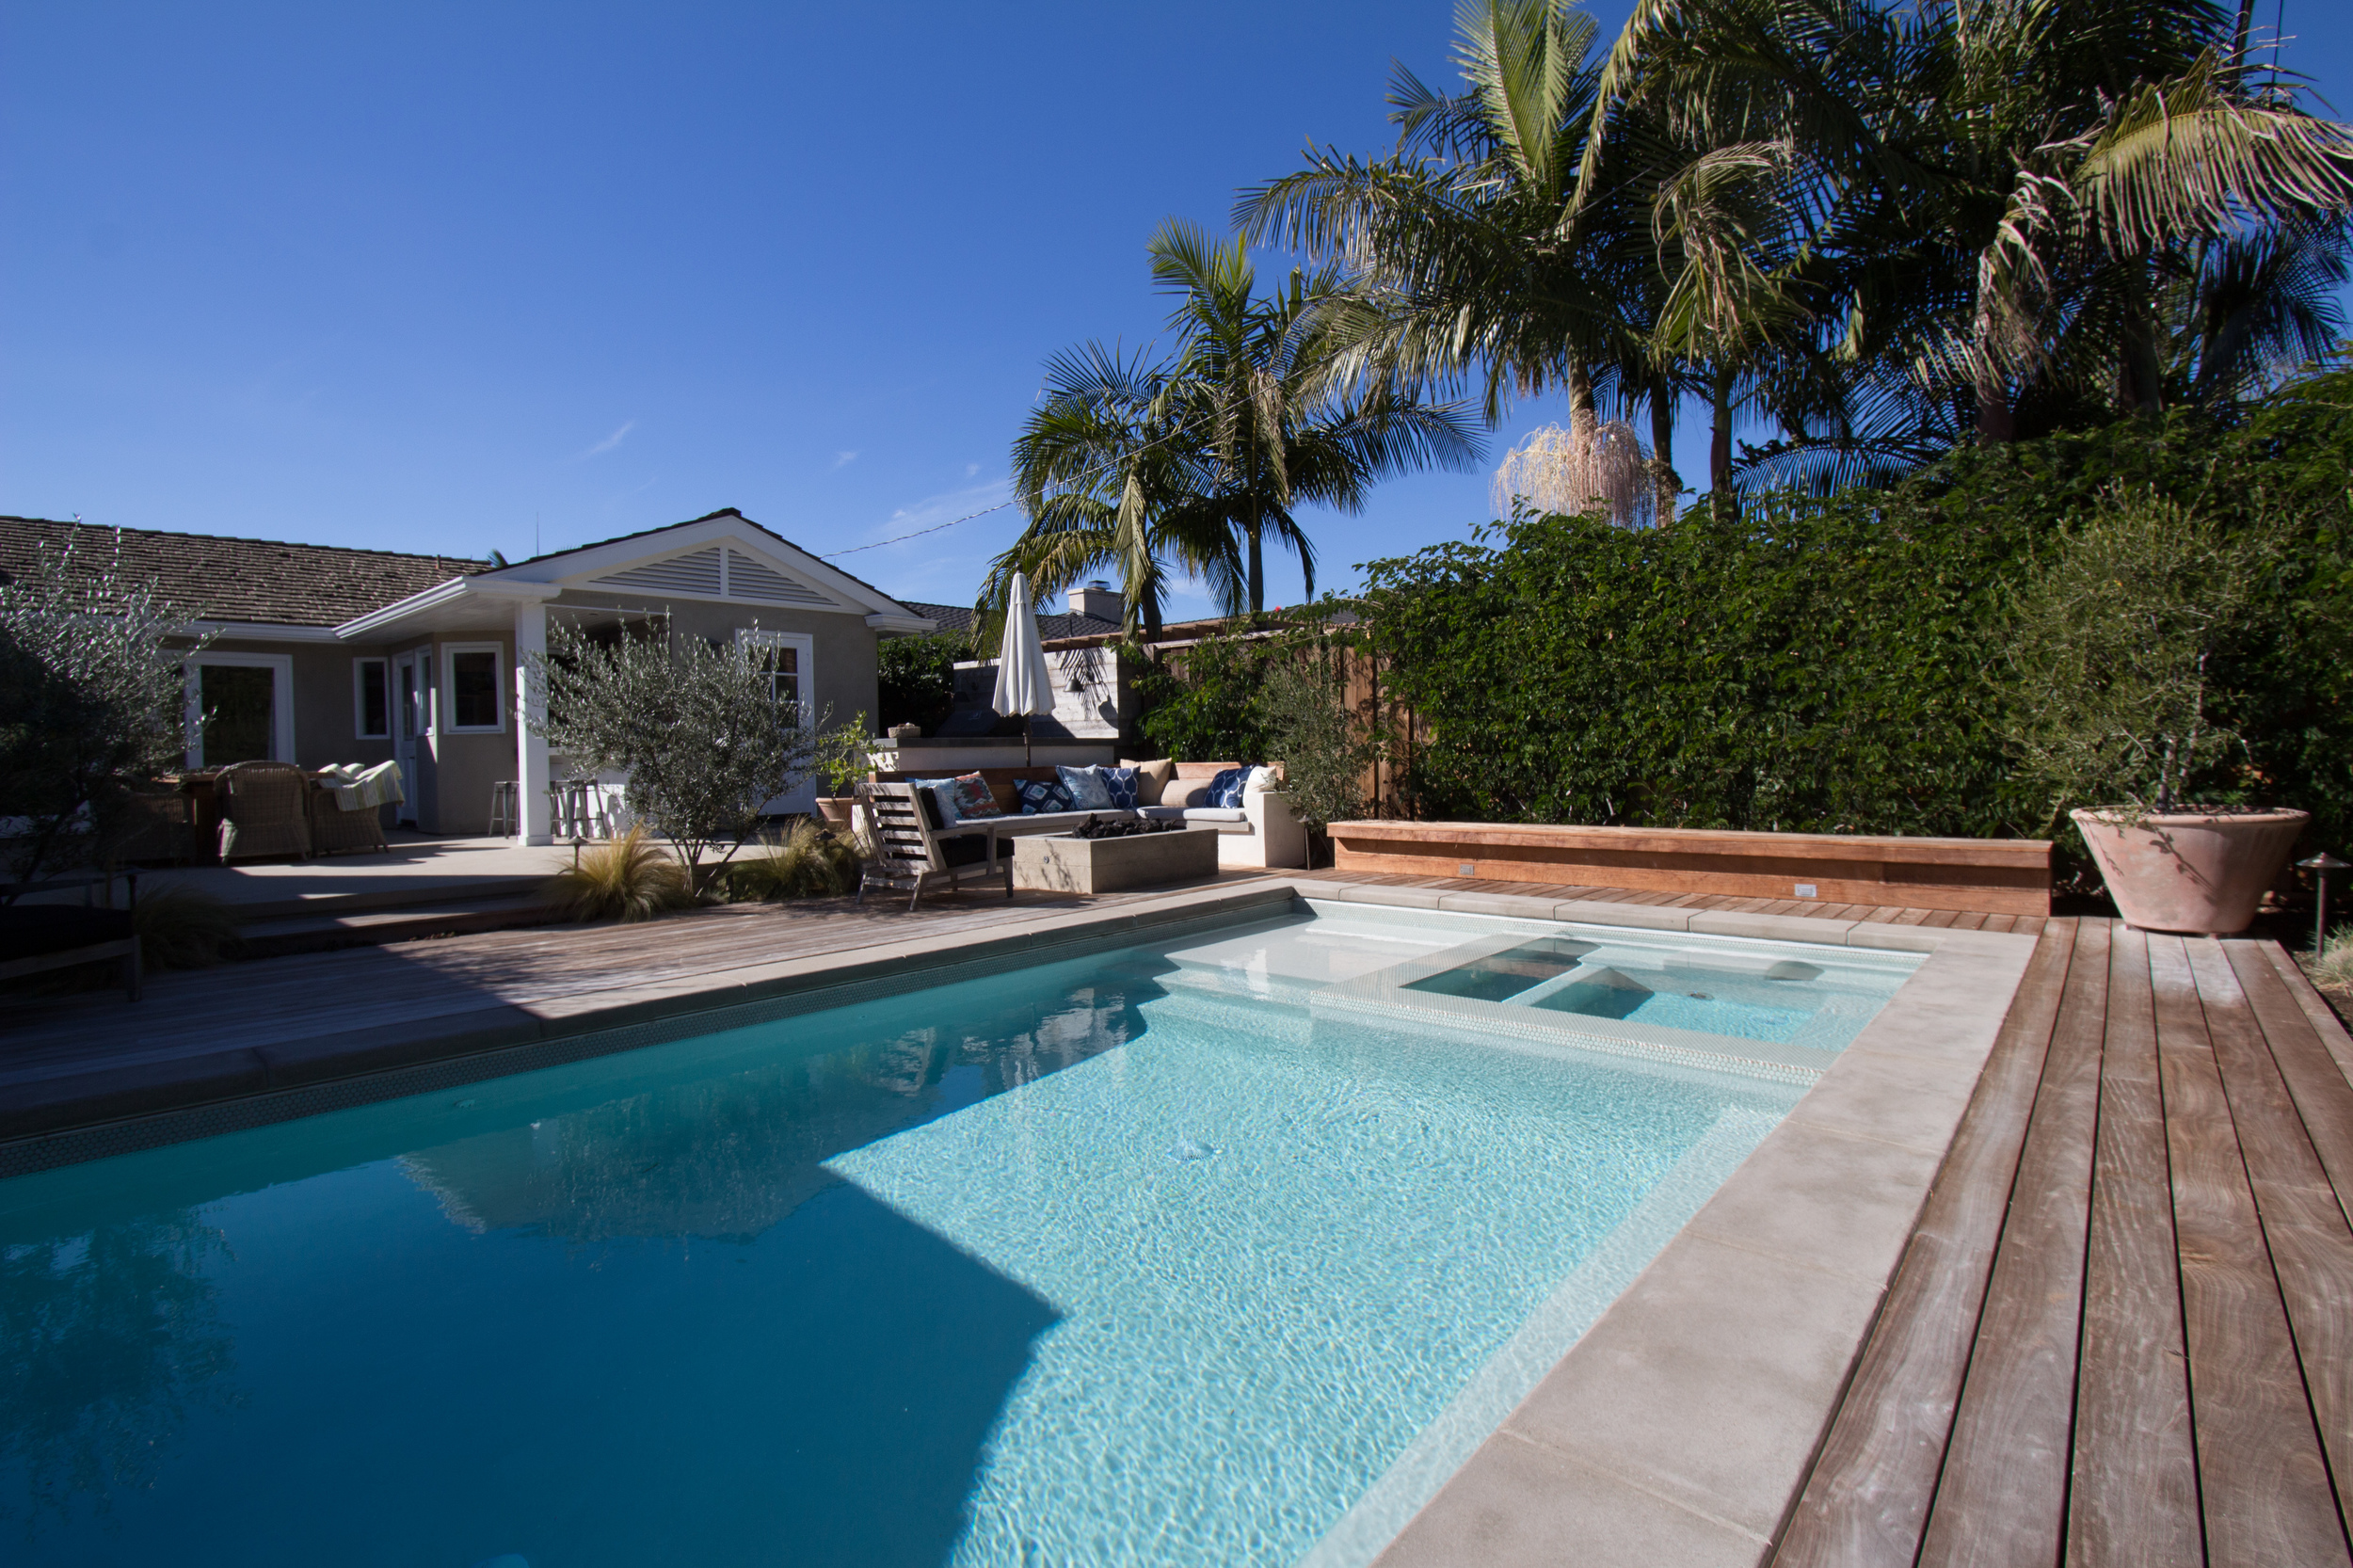 swimming pool game — Blog — California Pools